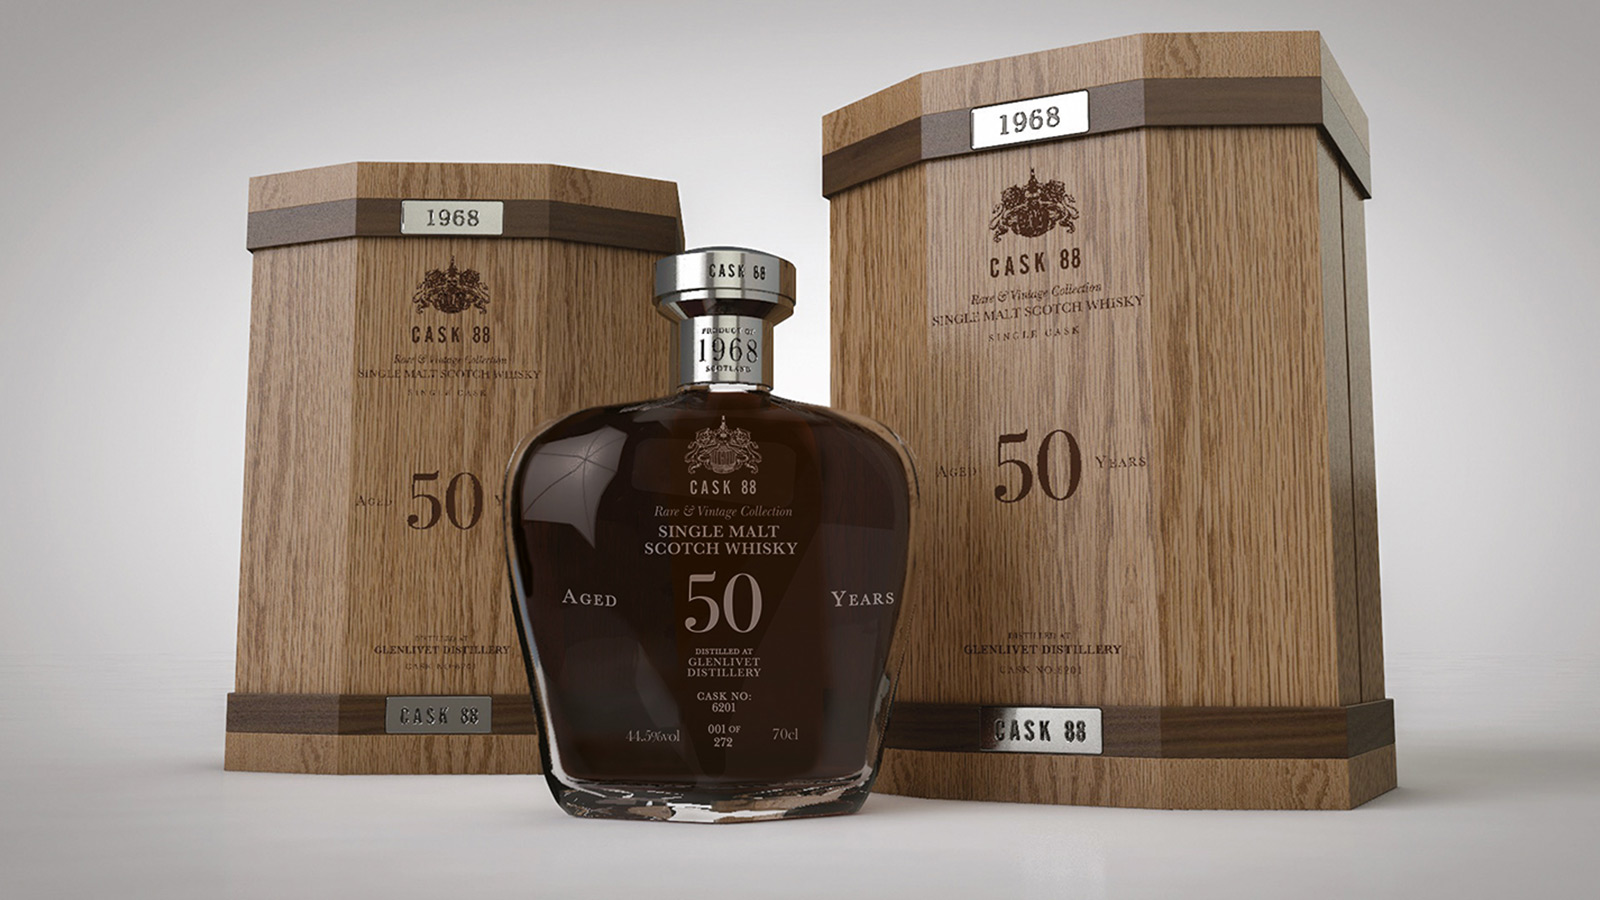 Glenlivet 50-year-old Scotch by Cask 88